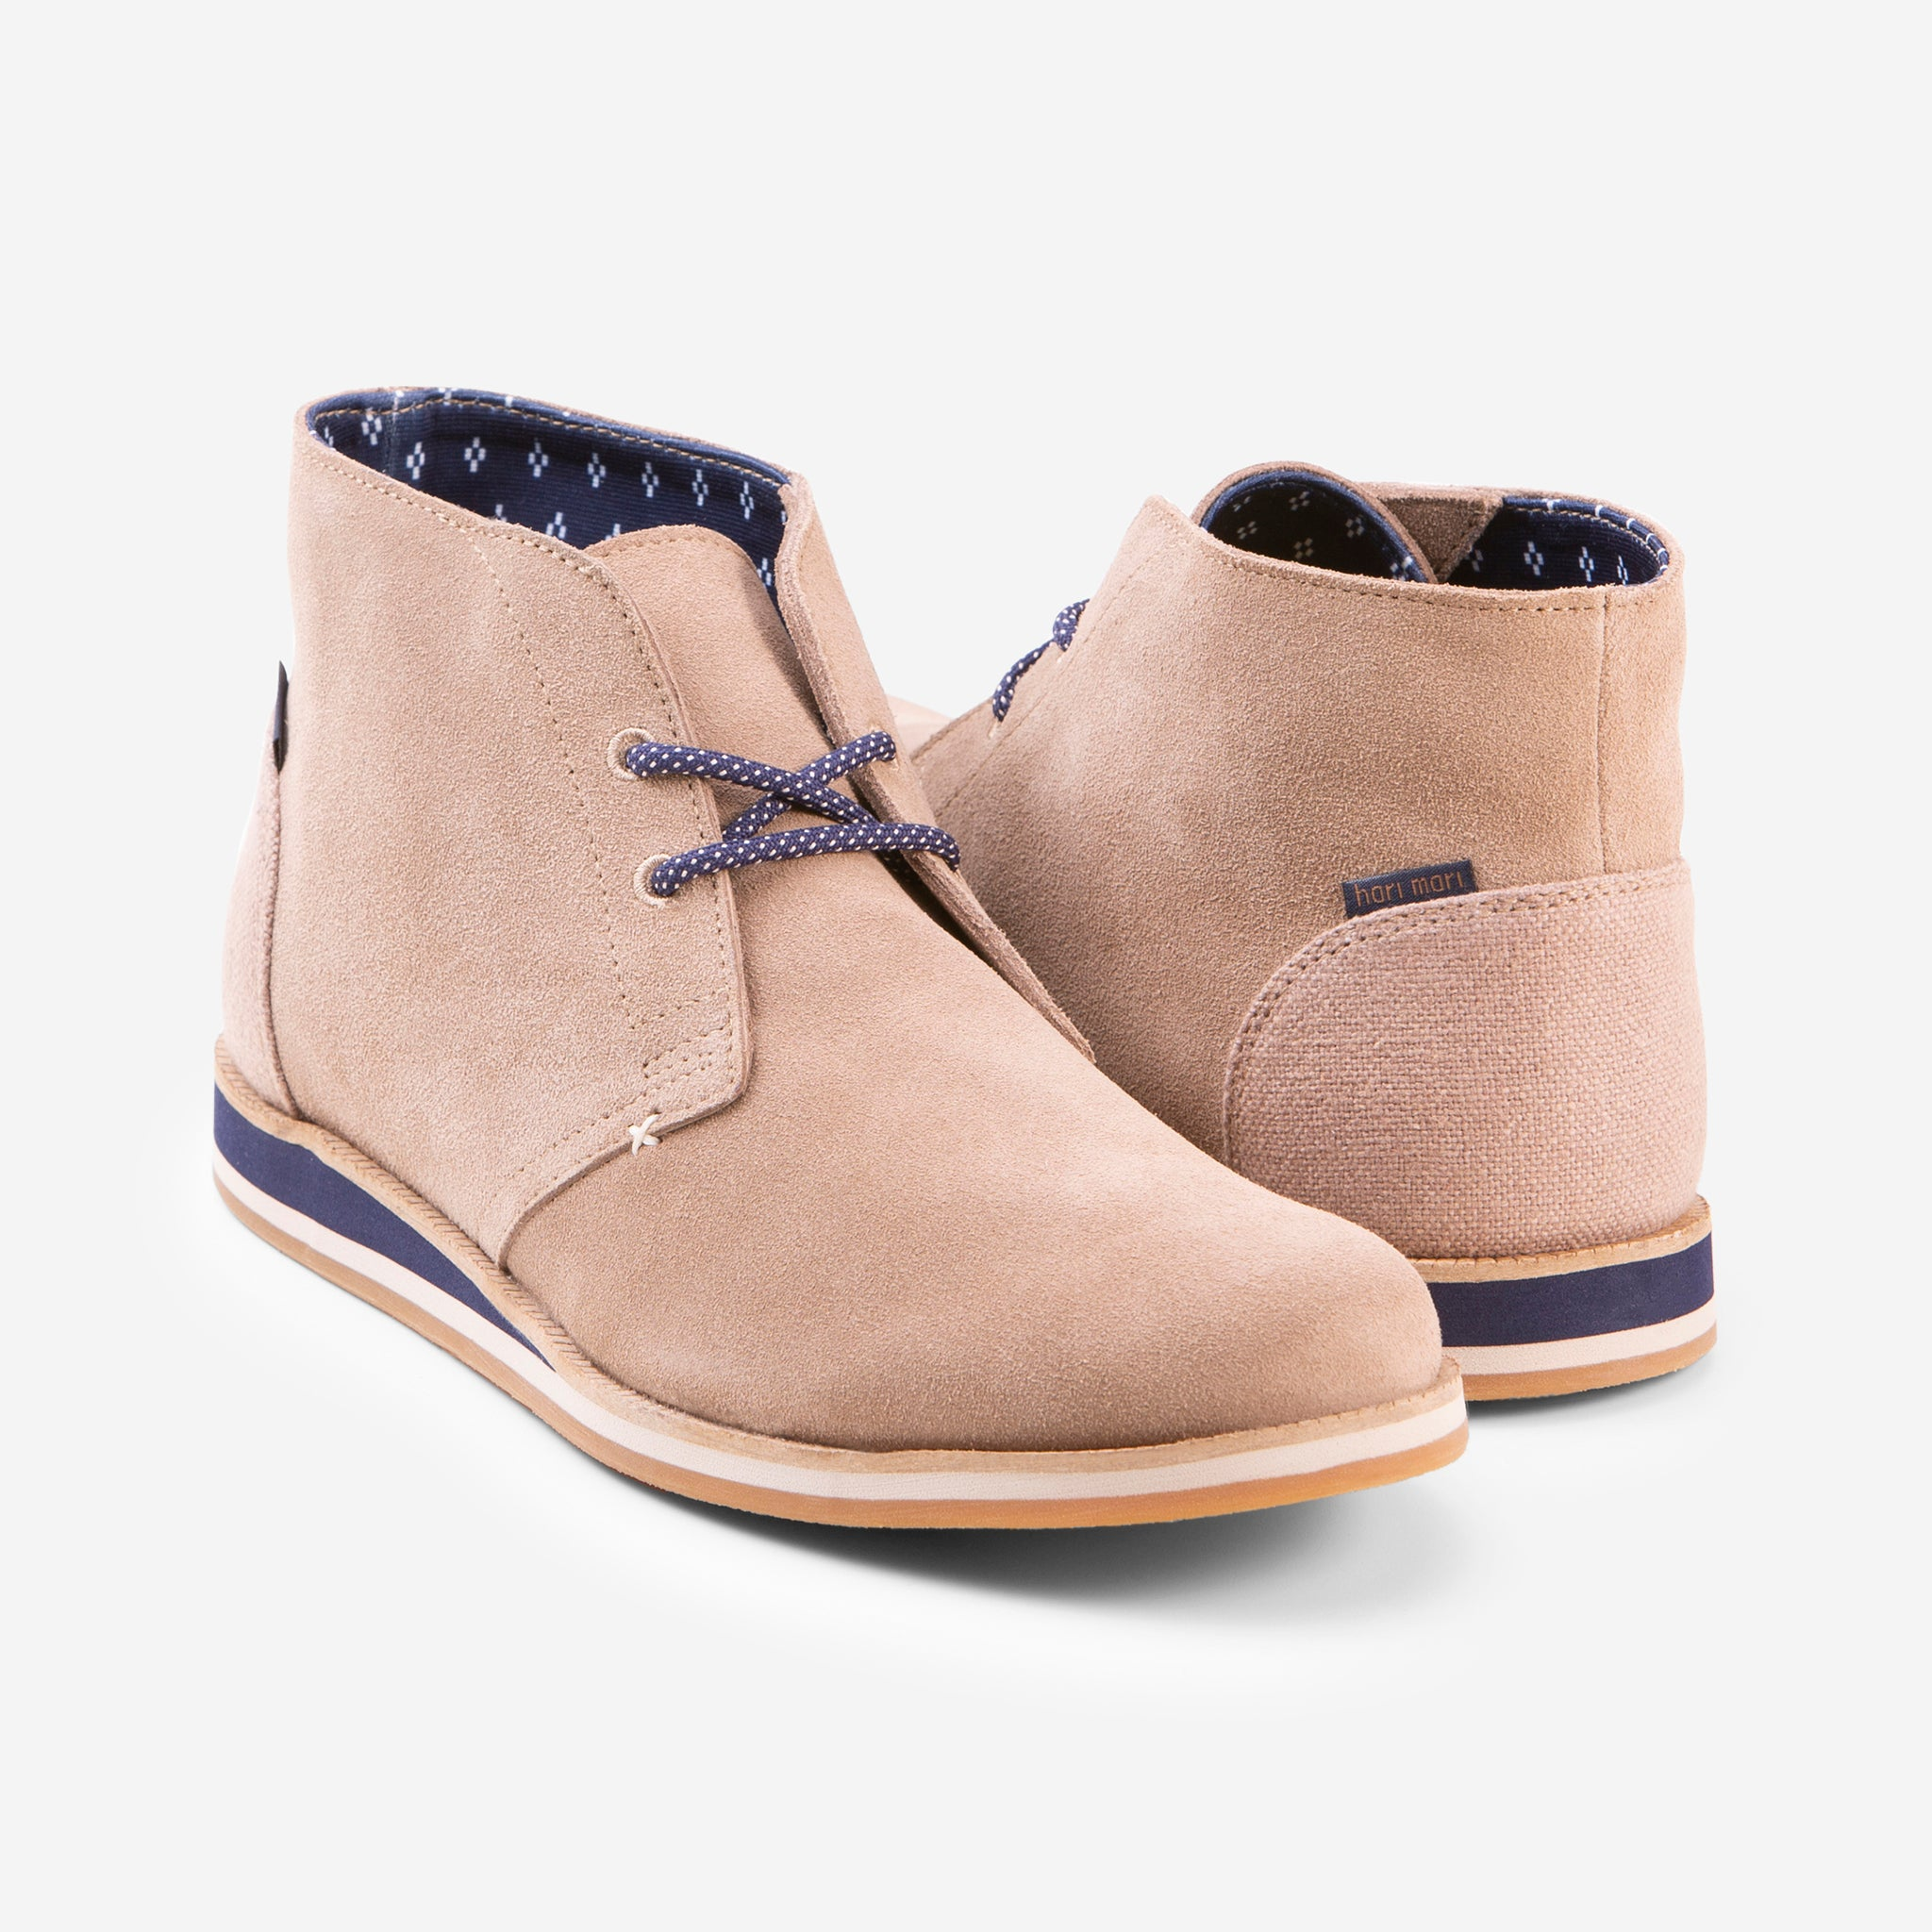 Adobe Desert Boot - Mens - Tan - 45 Degree View